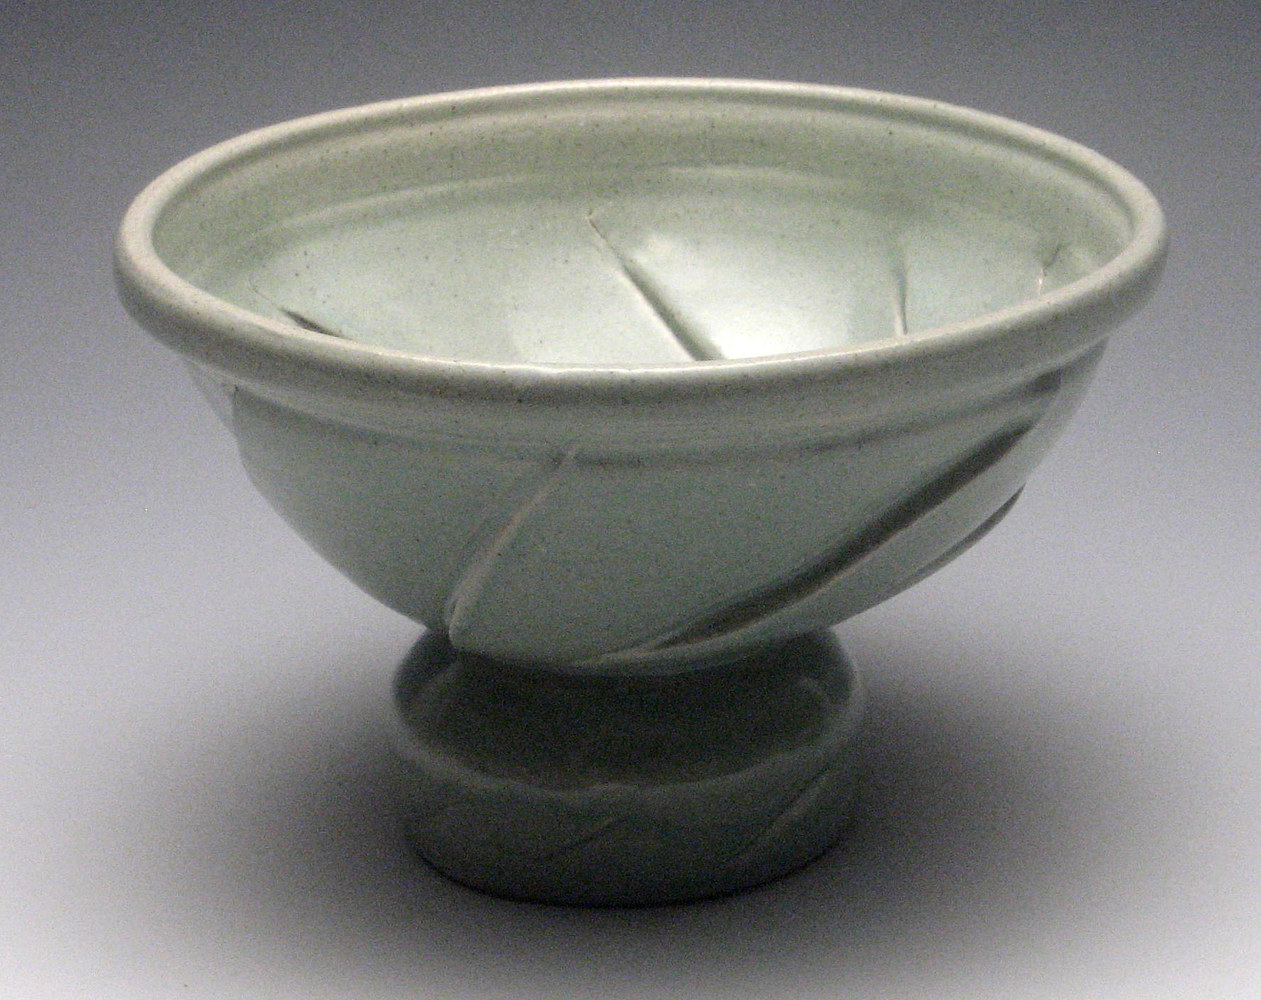 Bowl by Sharon V Smith